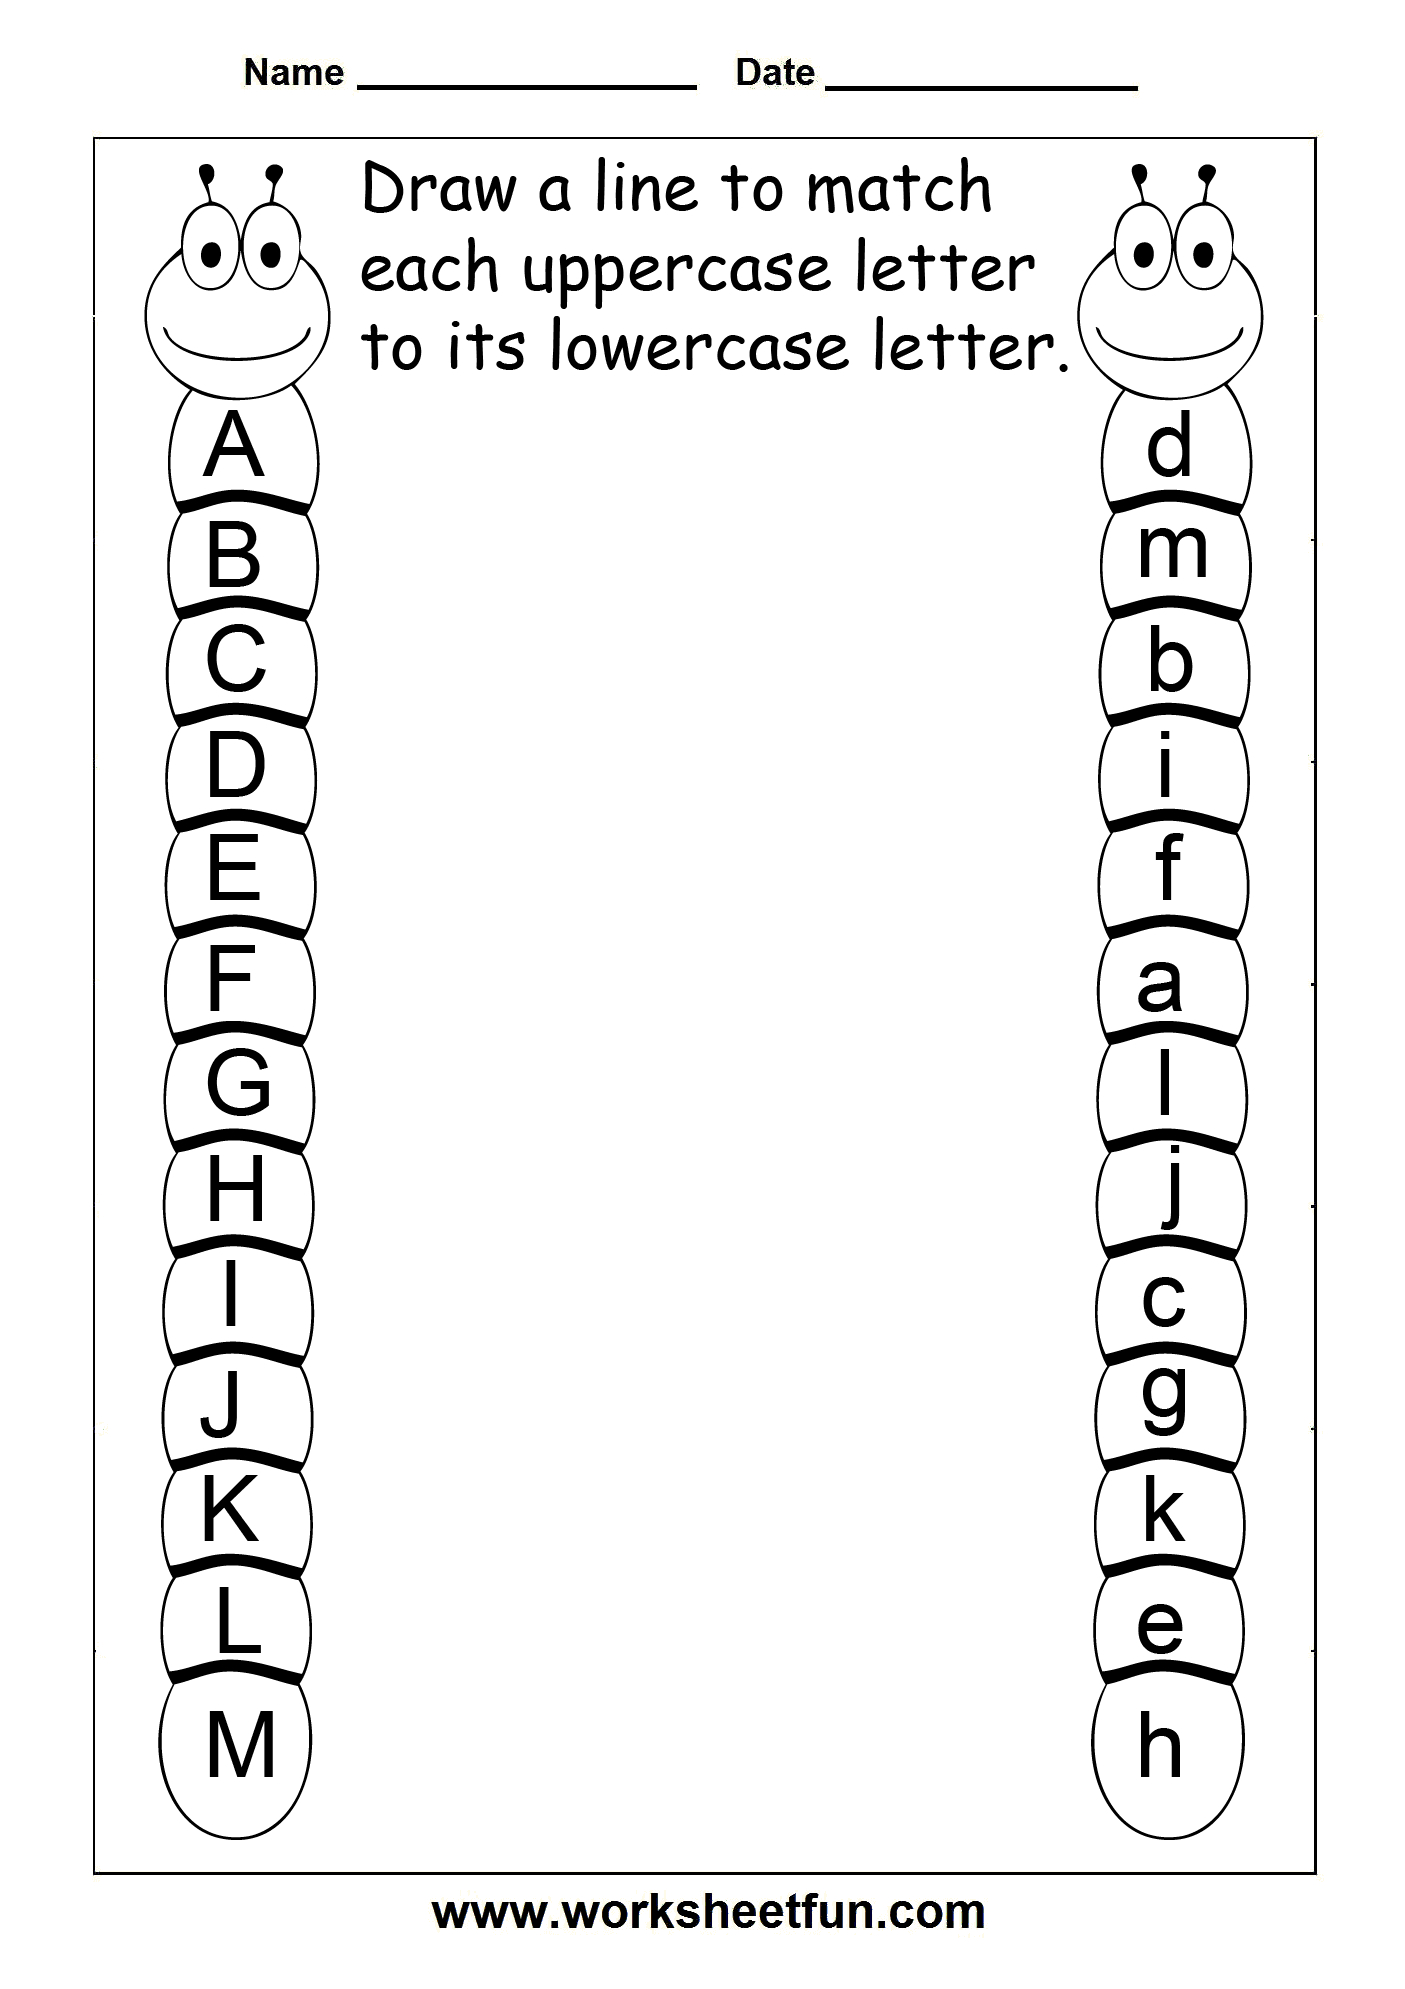 A Website With A Crap Ton Of Awesome School Work Sheets. Rhyas - Free Printable Alphabet Worksheets For Grade 1